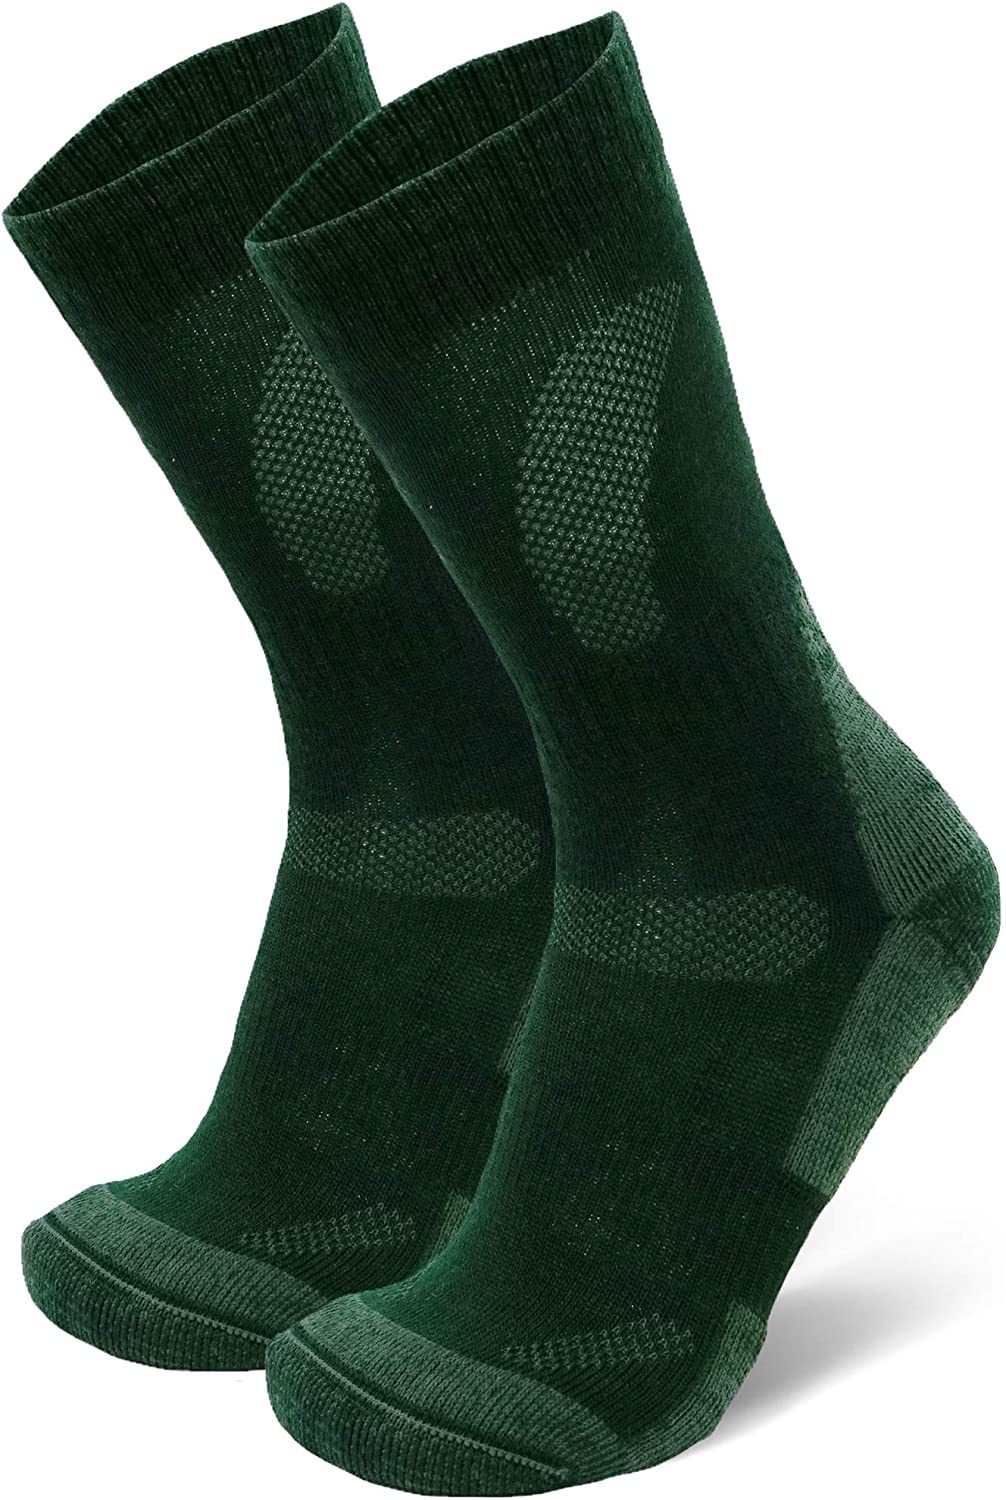 Outdoor Camping Forest Crazy Socks Casual Cotton Crew Socks Cute Funny Sock great for sports and hiking